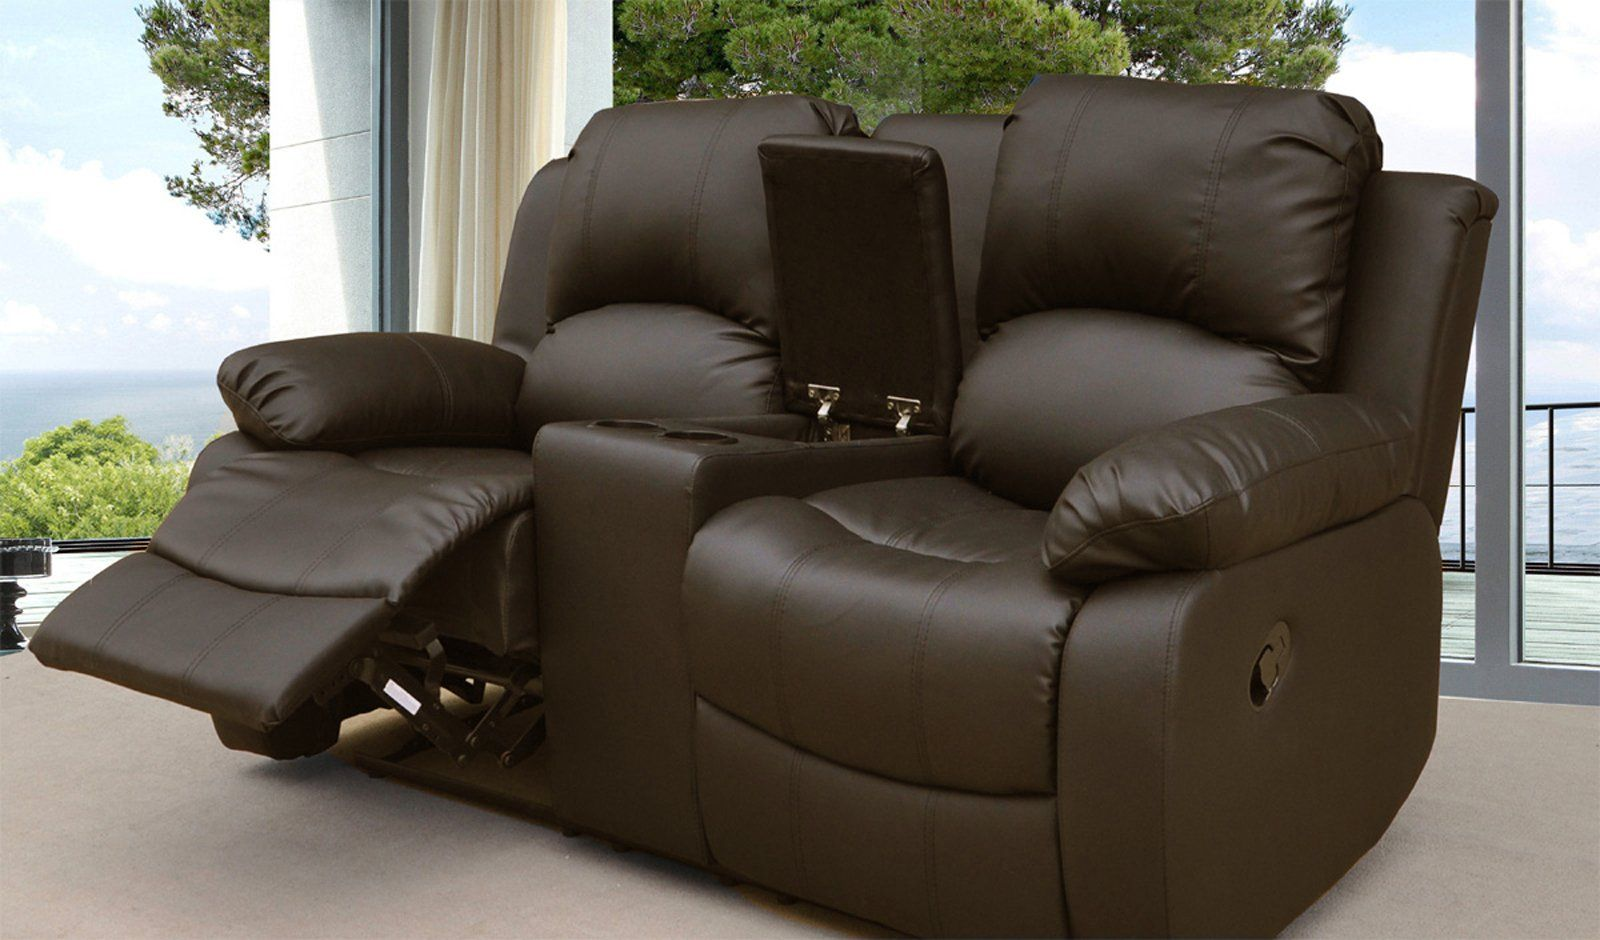 Stressless Buckingham High-Back 2-Seater Reclining Loveseat ...